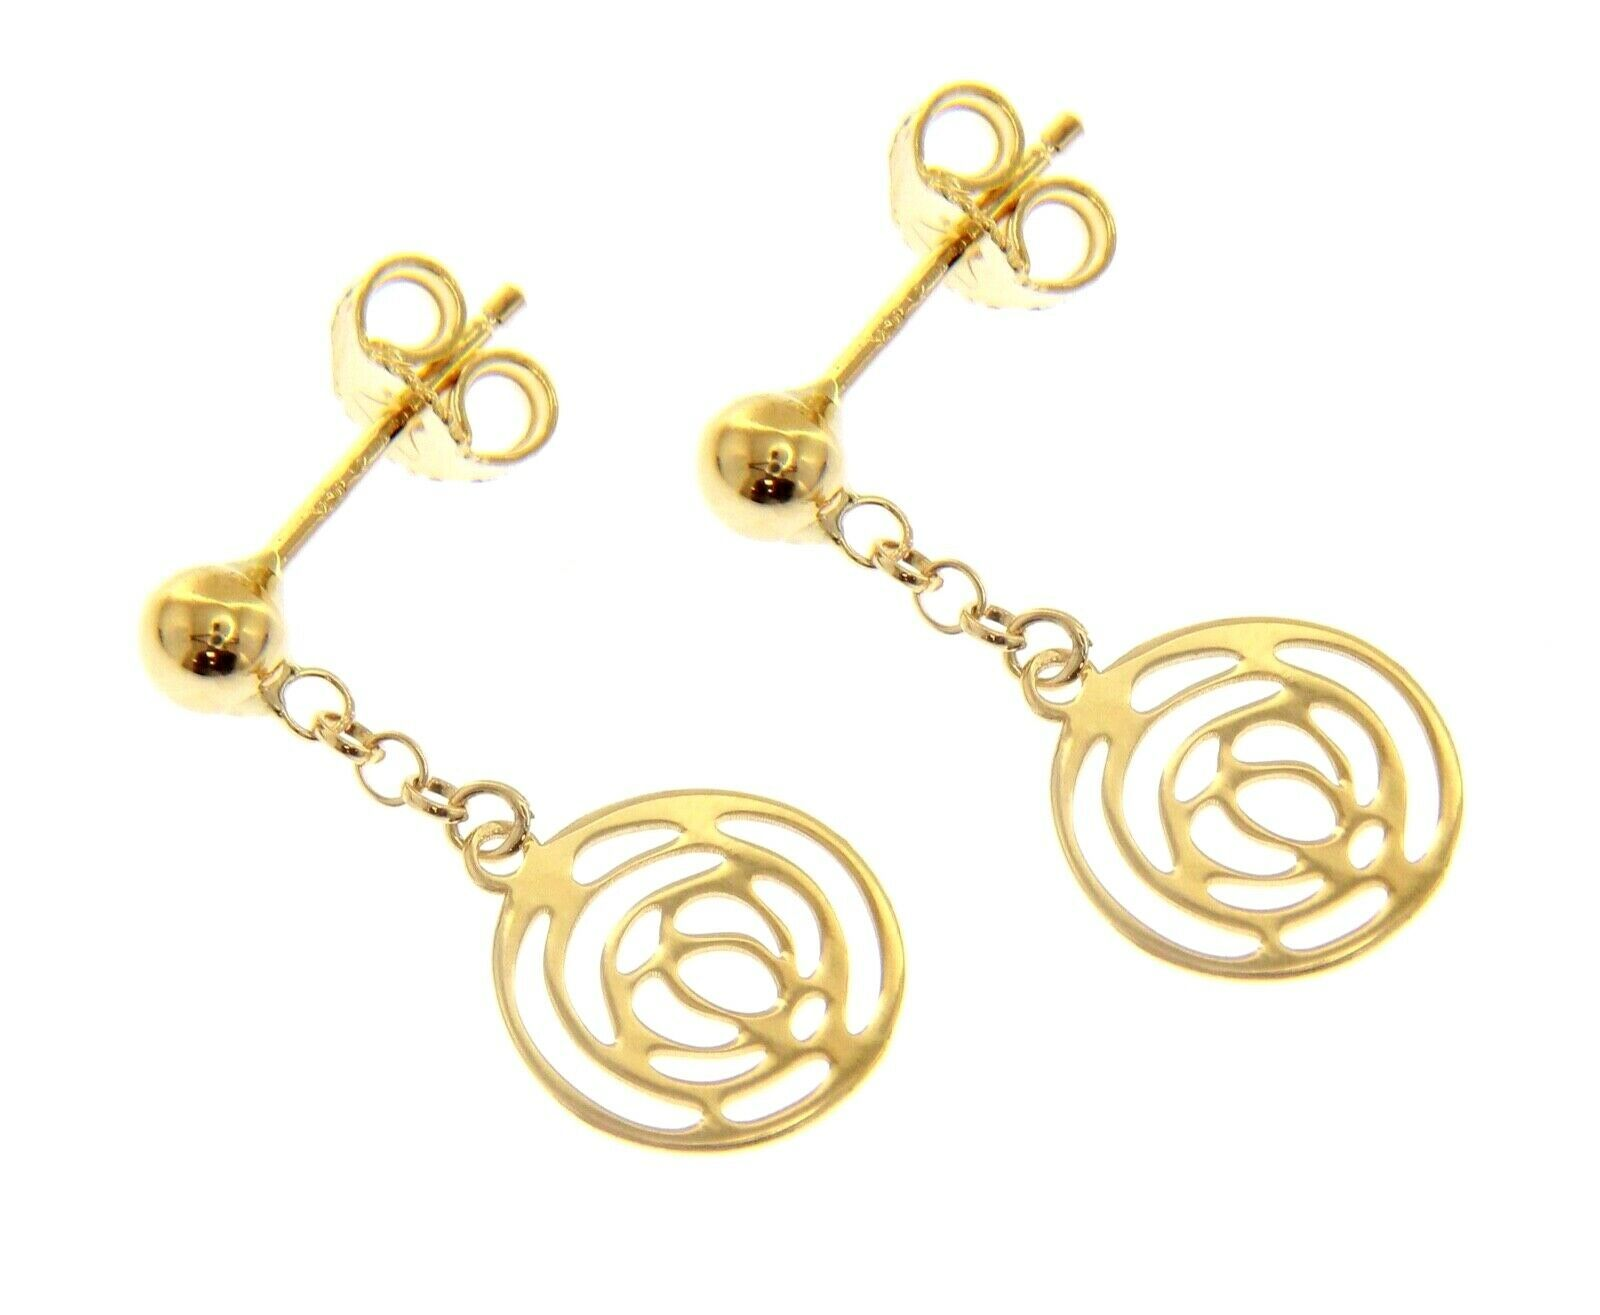 18K YELLOW GOLD PENDANT EARRINGS, FLOWER ROSE WORKED DISC, 23mm MADE IN ITALY